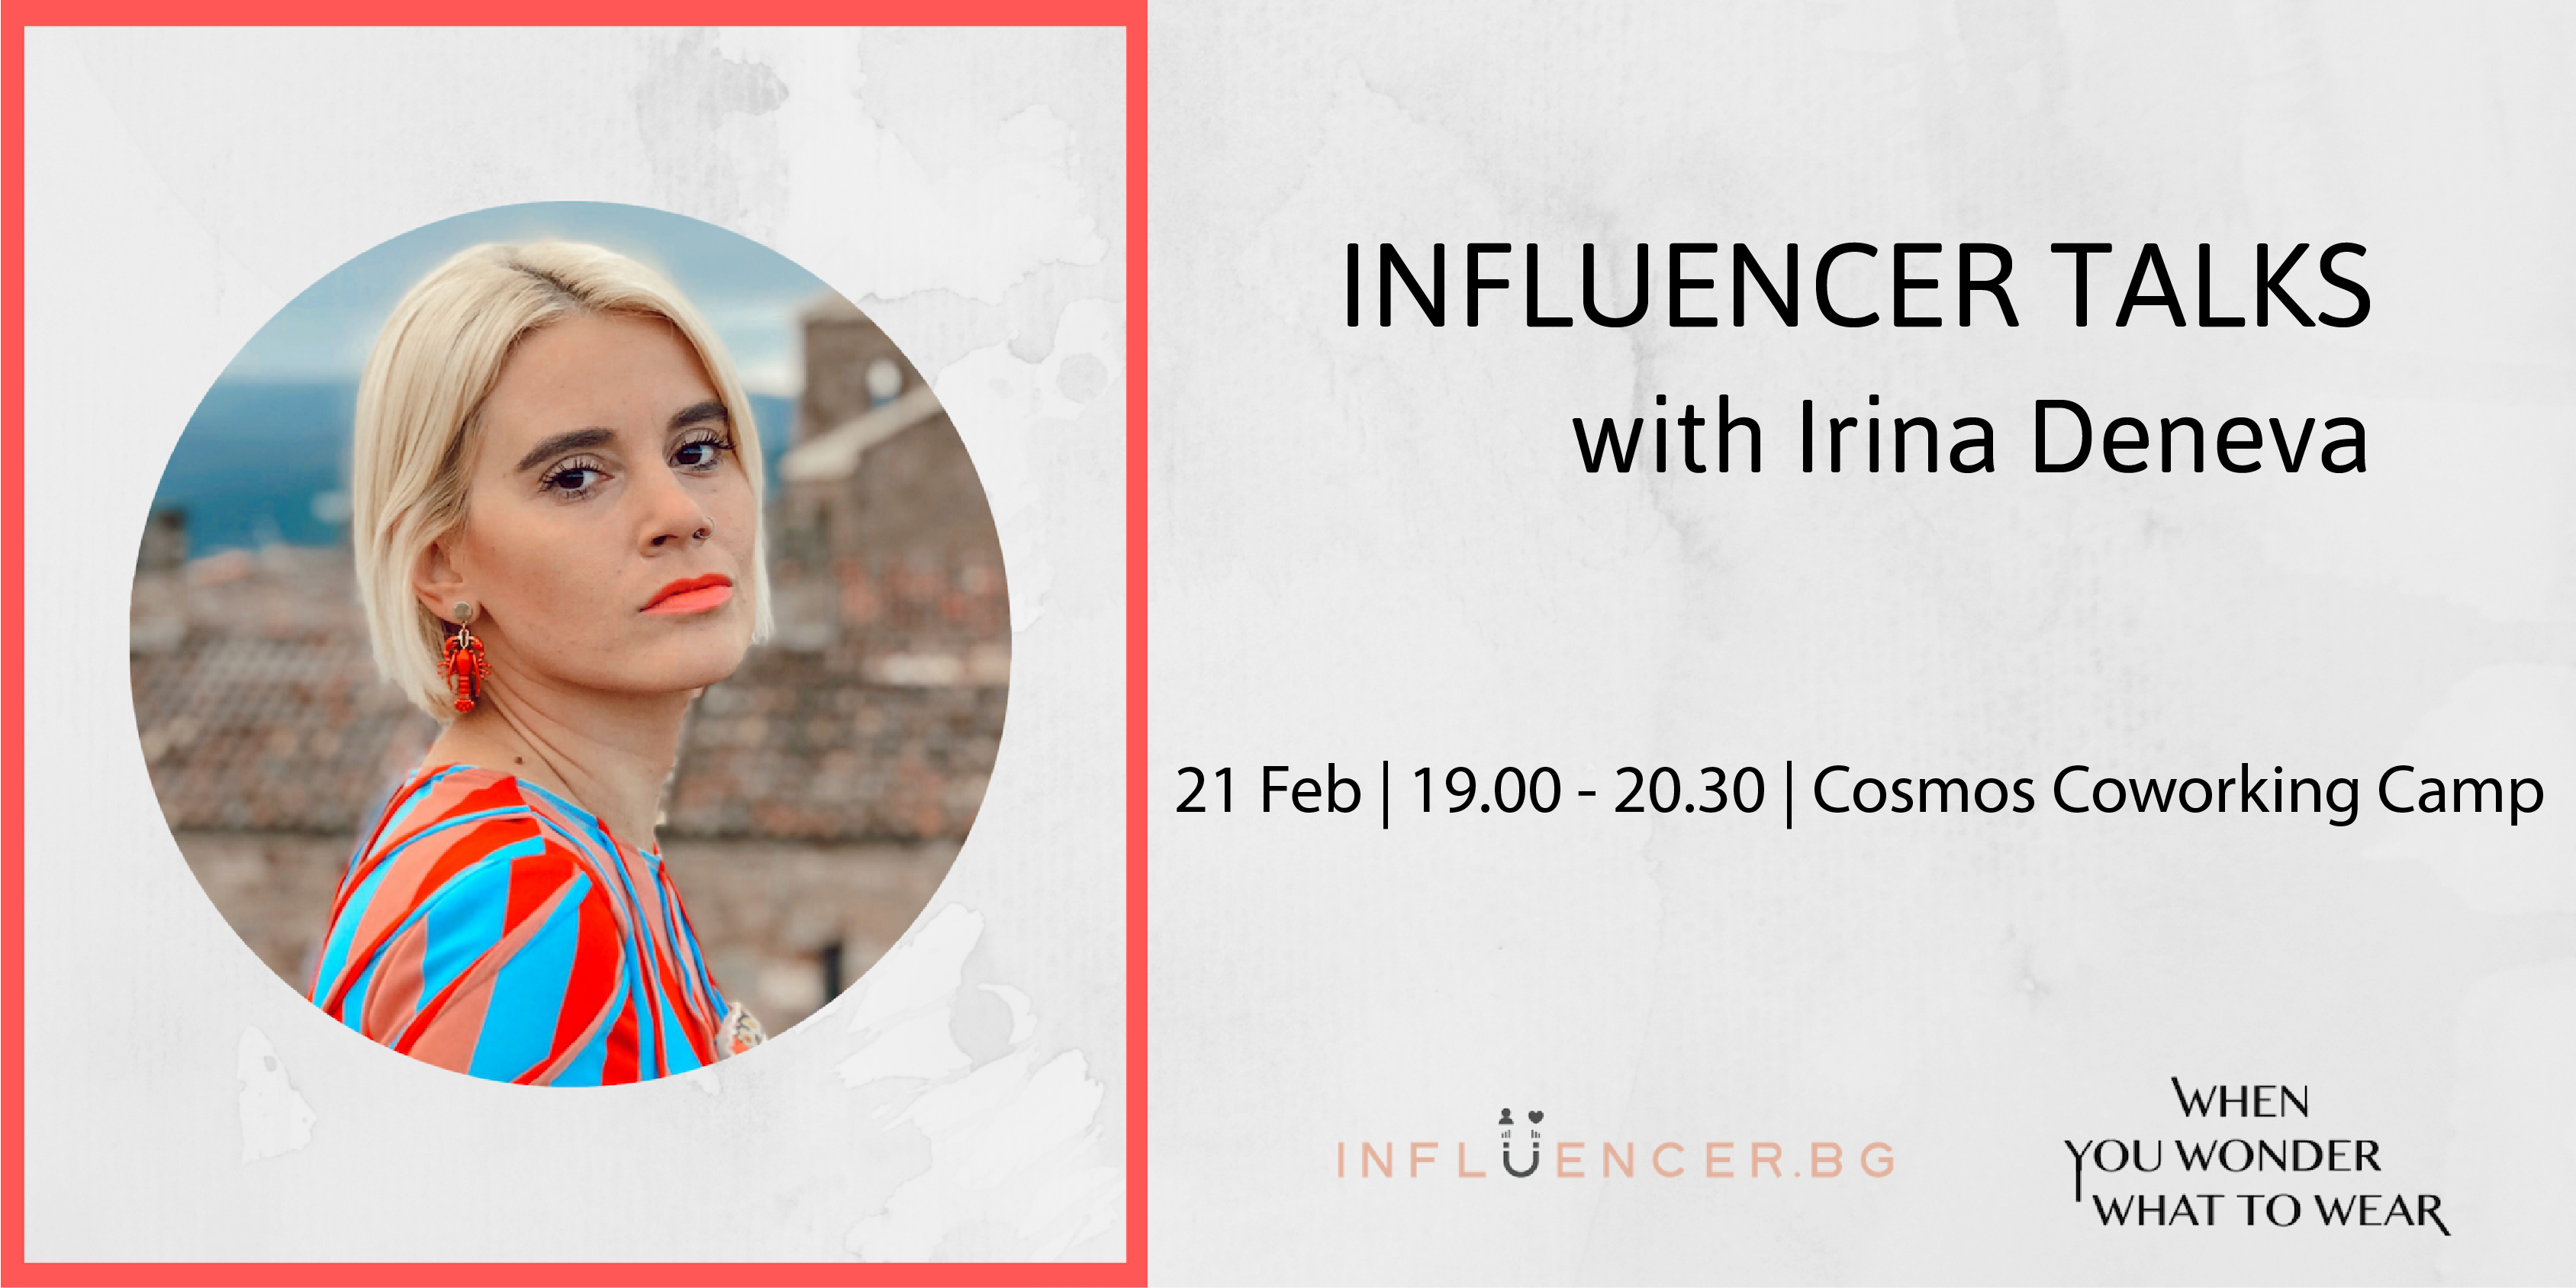 Influencer Talks with Irina Deneva